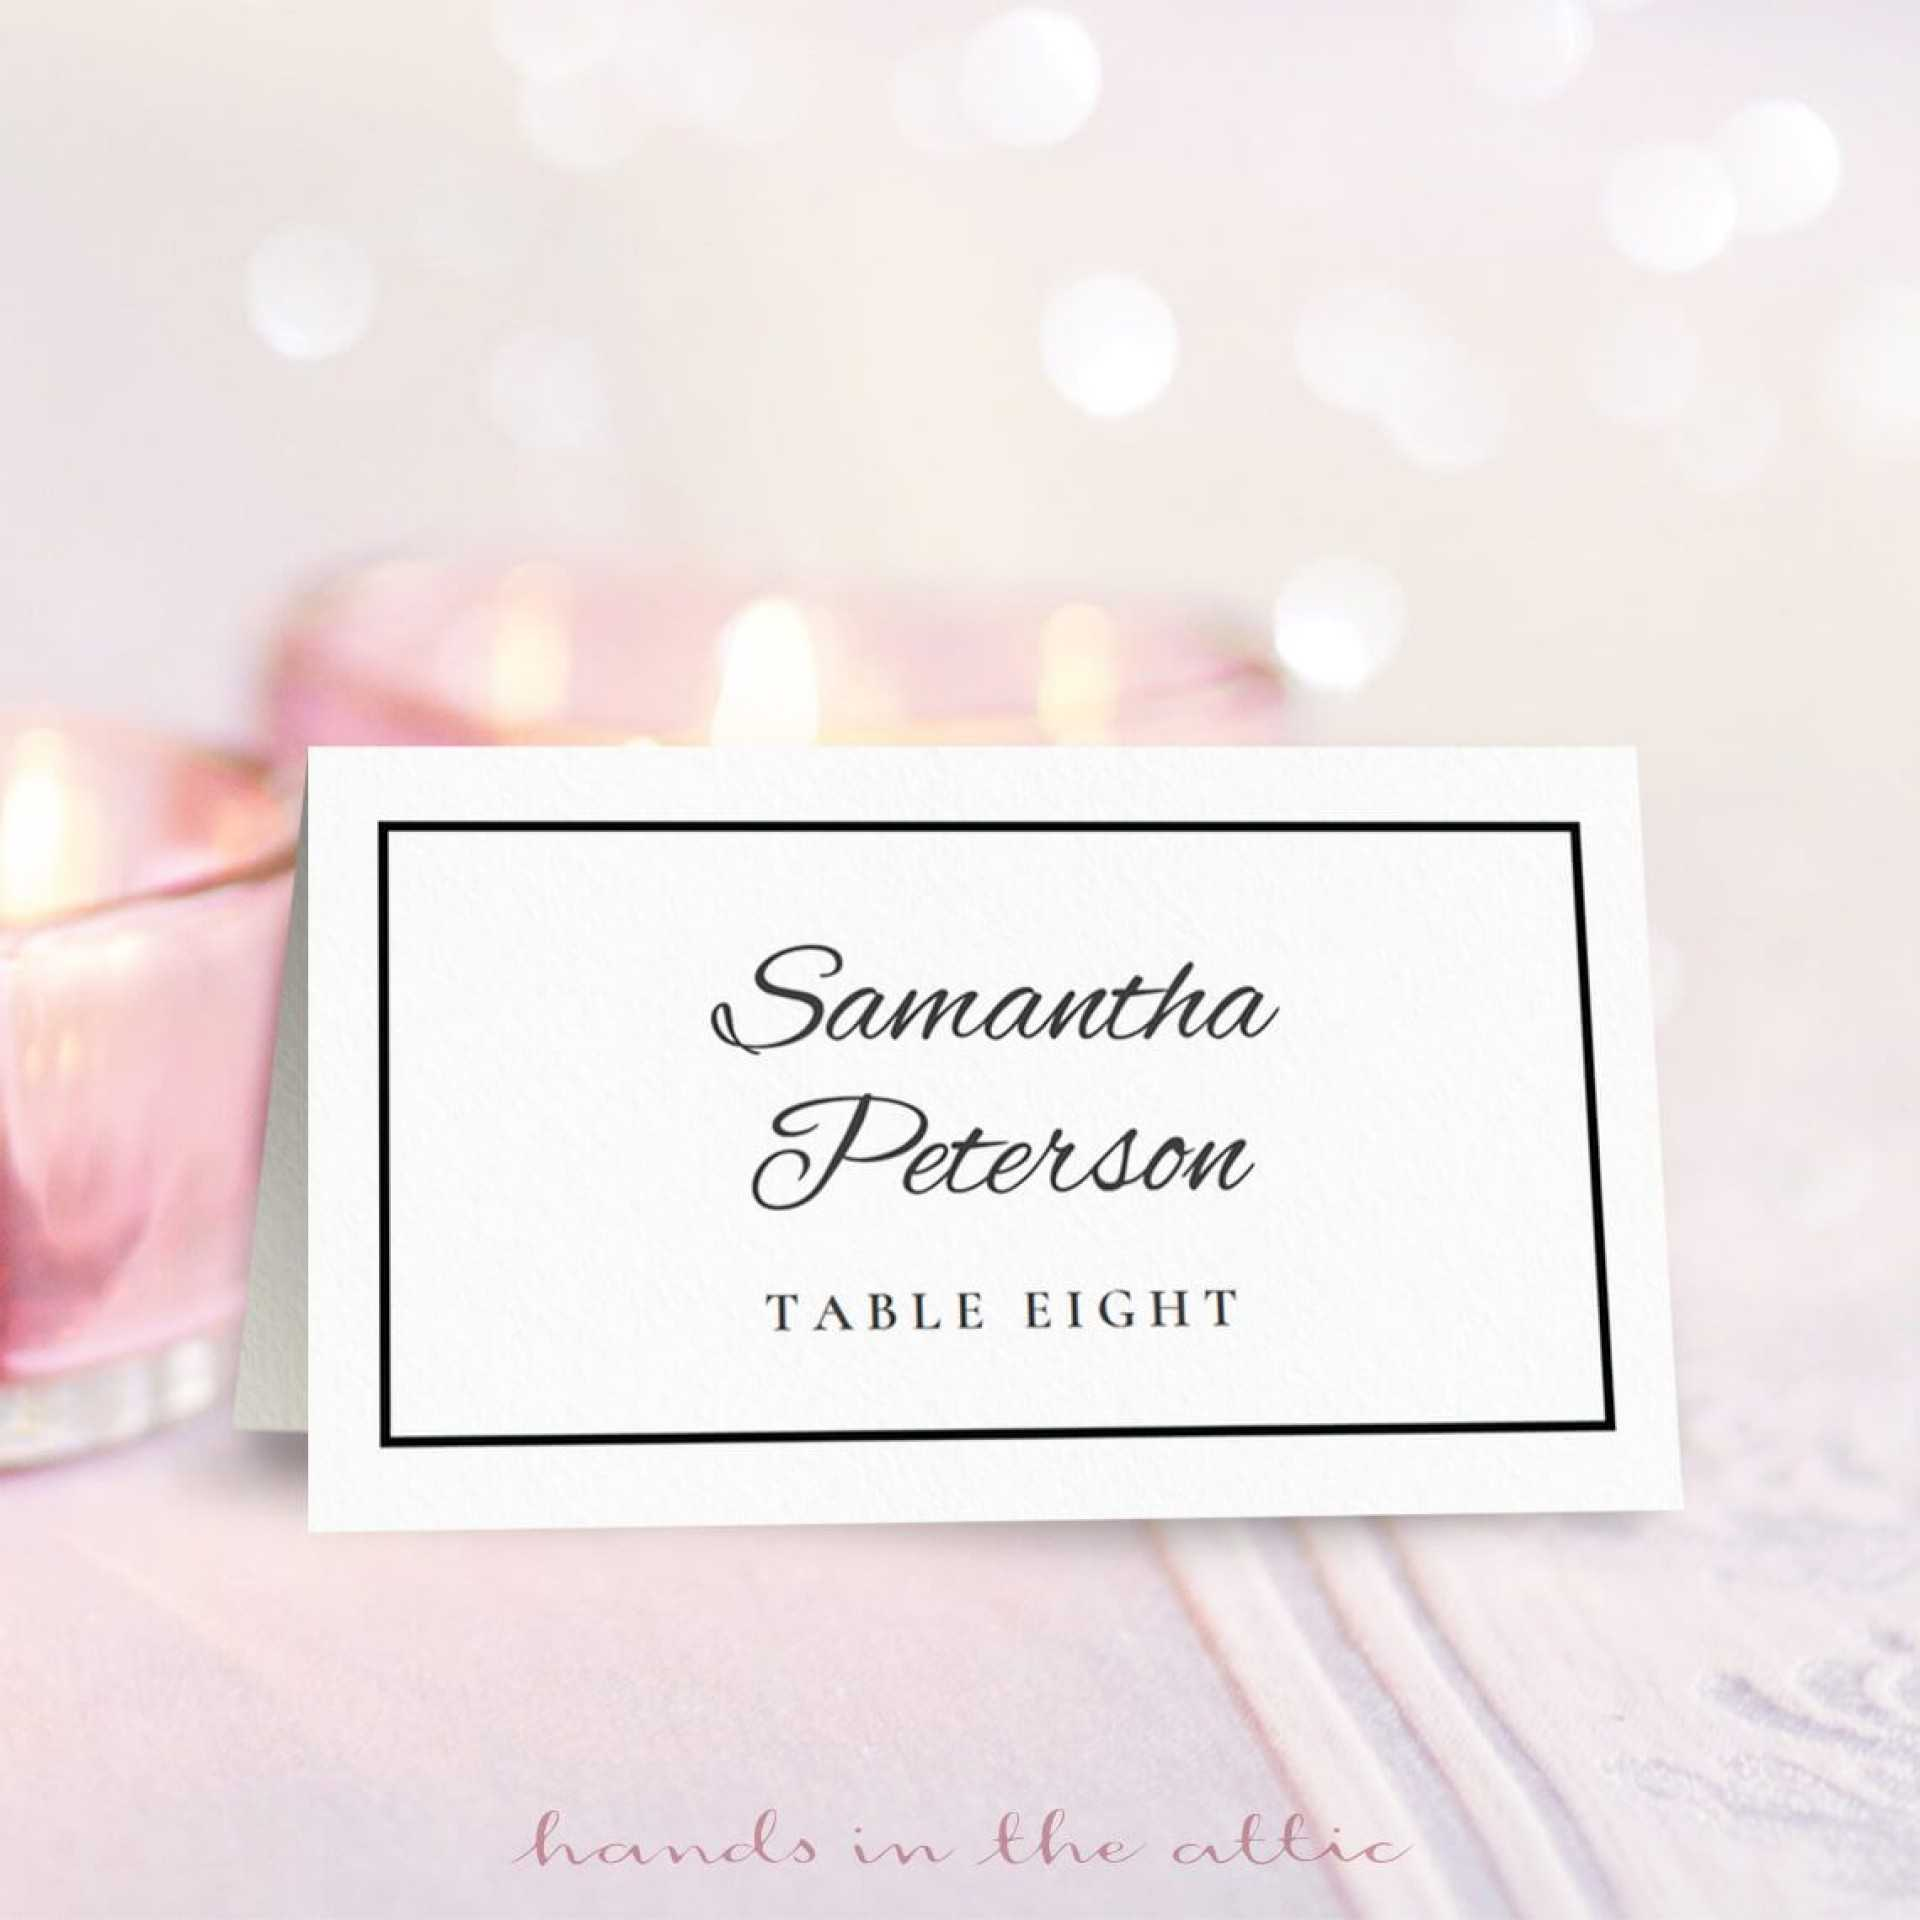 002 Christmas Table Name Cards Template Free Unforgettable With Regard To Christmas Table Place Cards Template